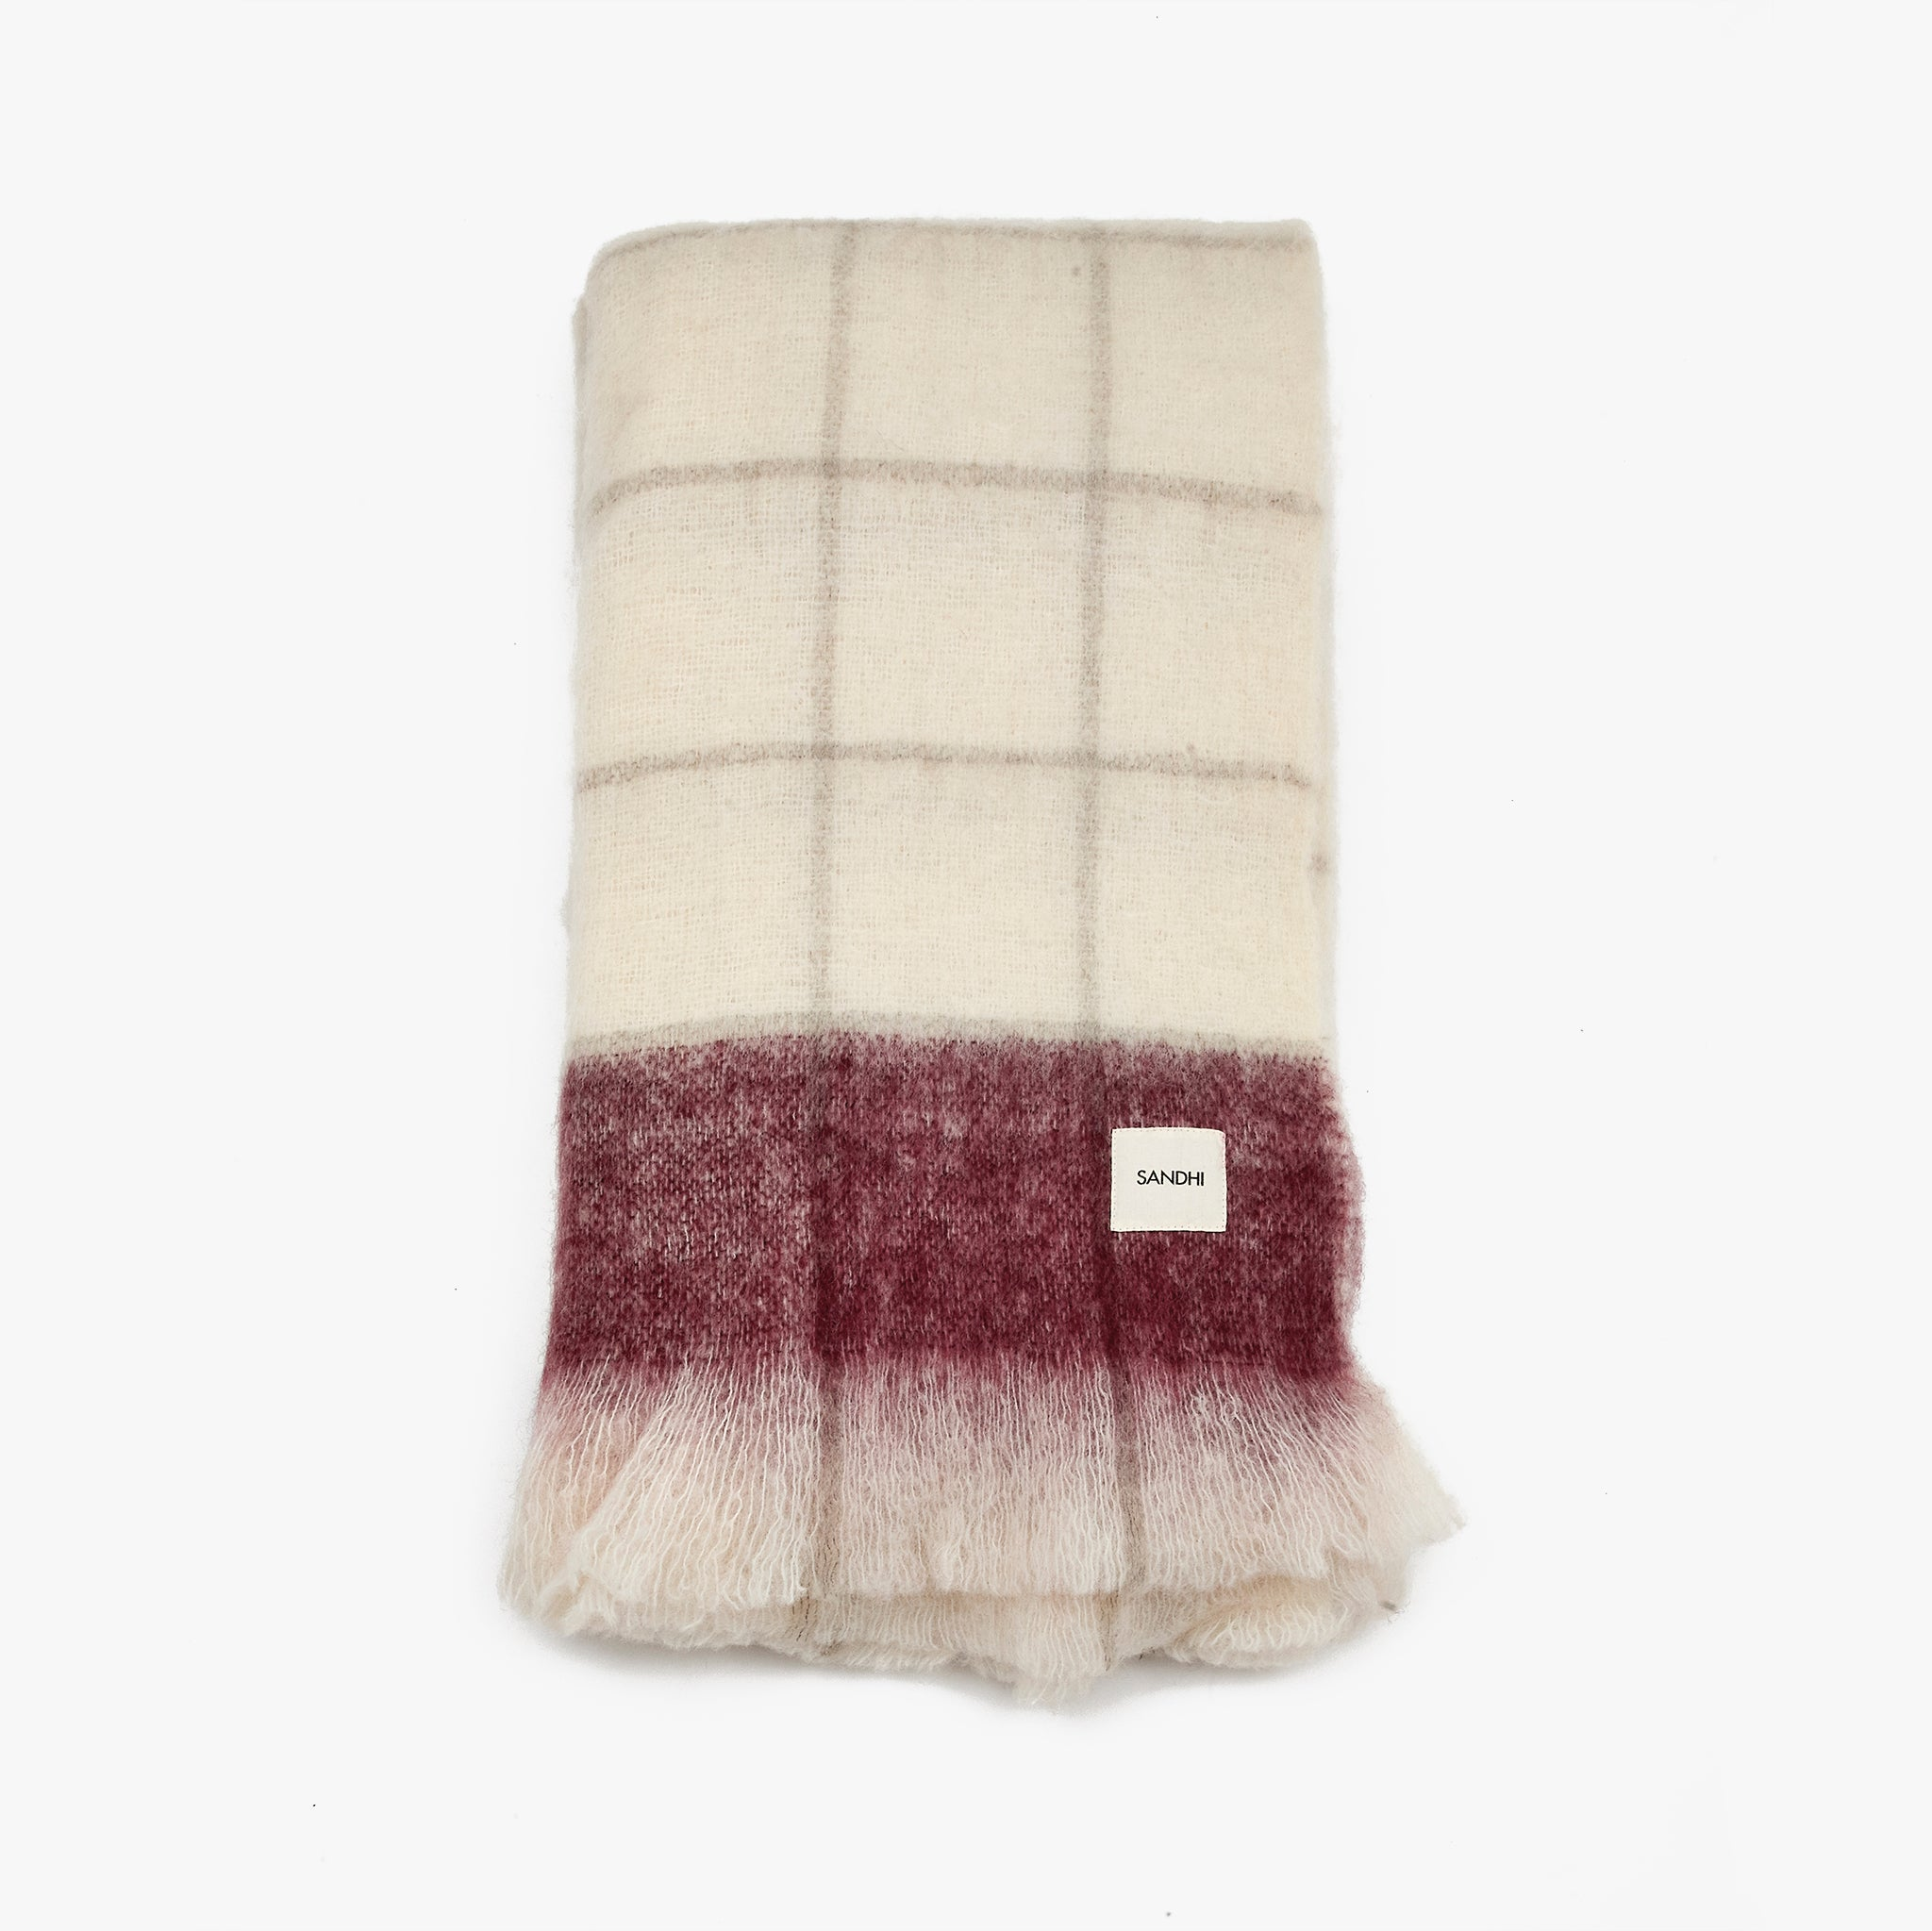 Pure Wool Sofa Throw Blanket | Sandhi